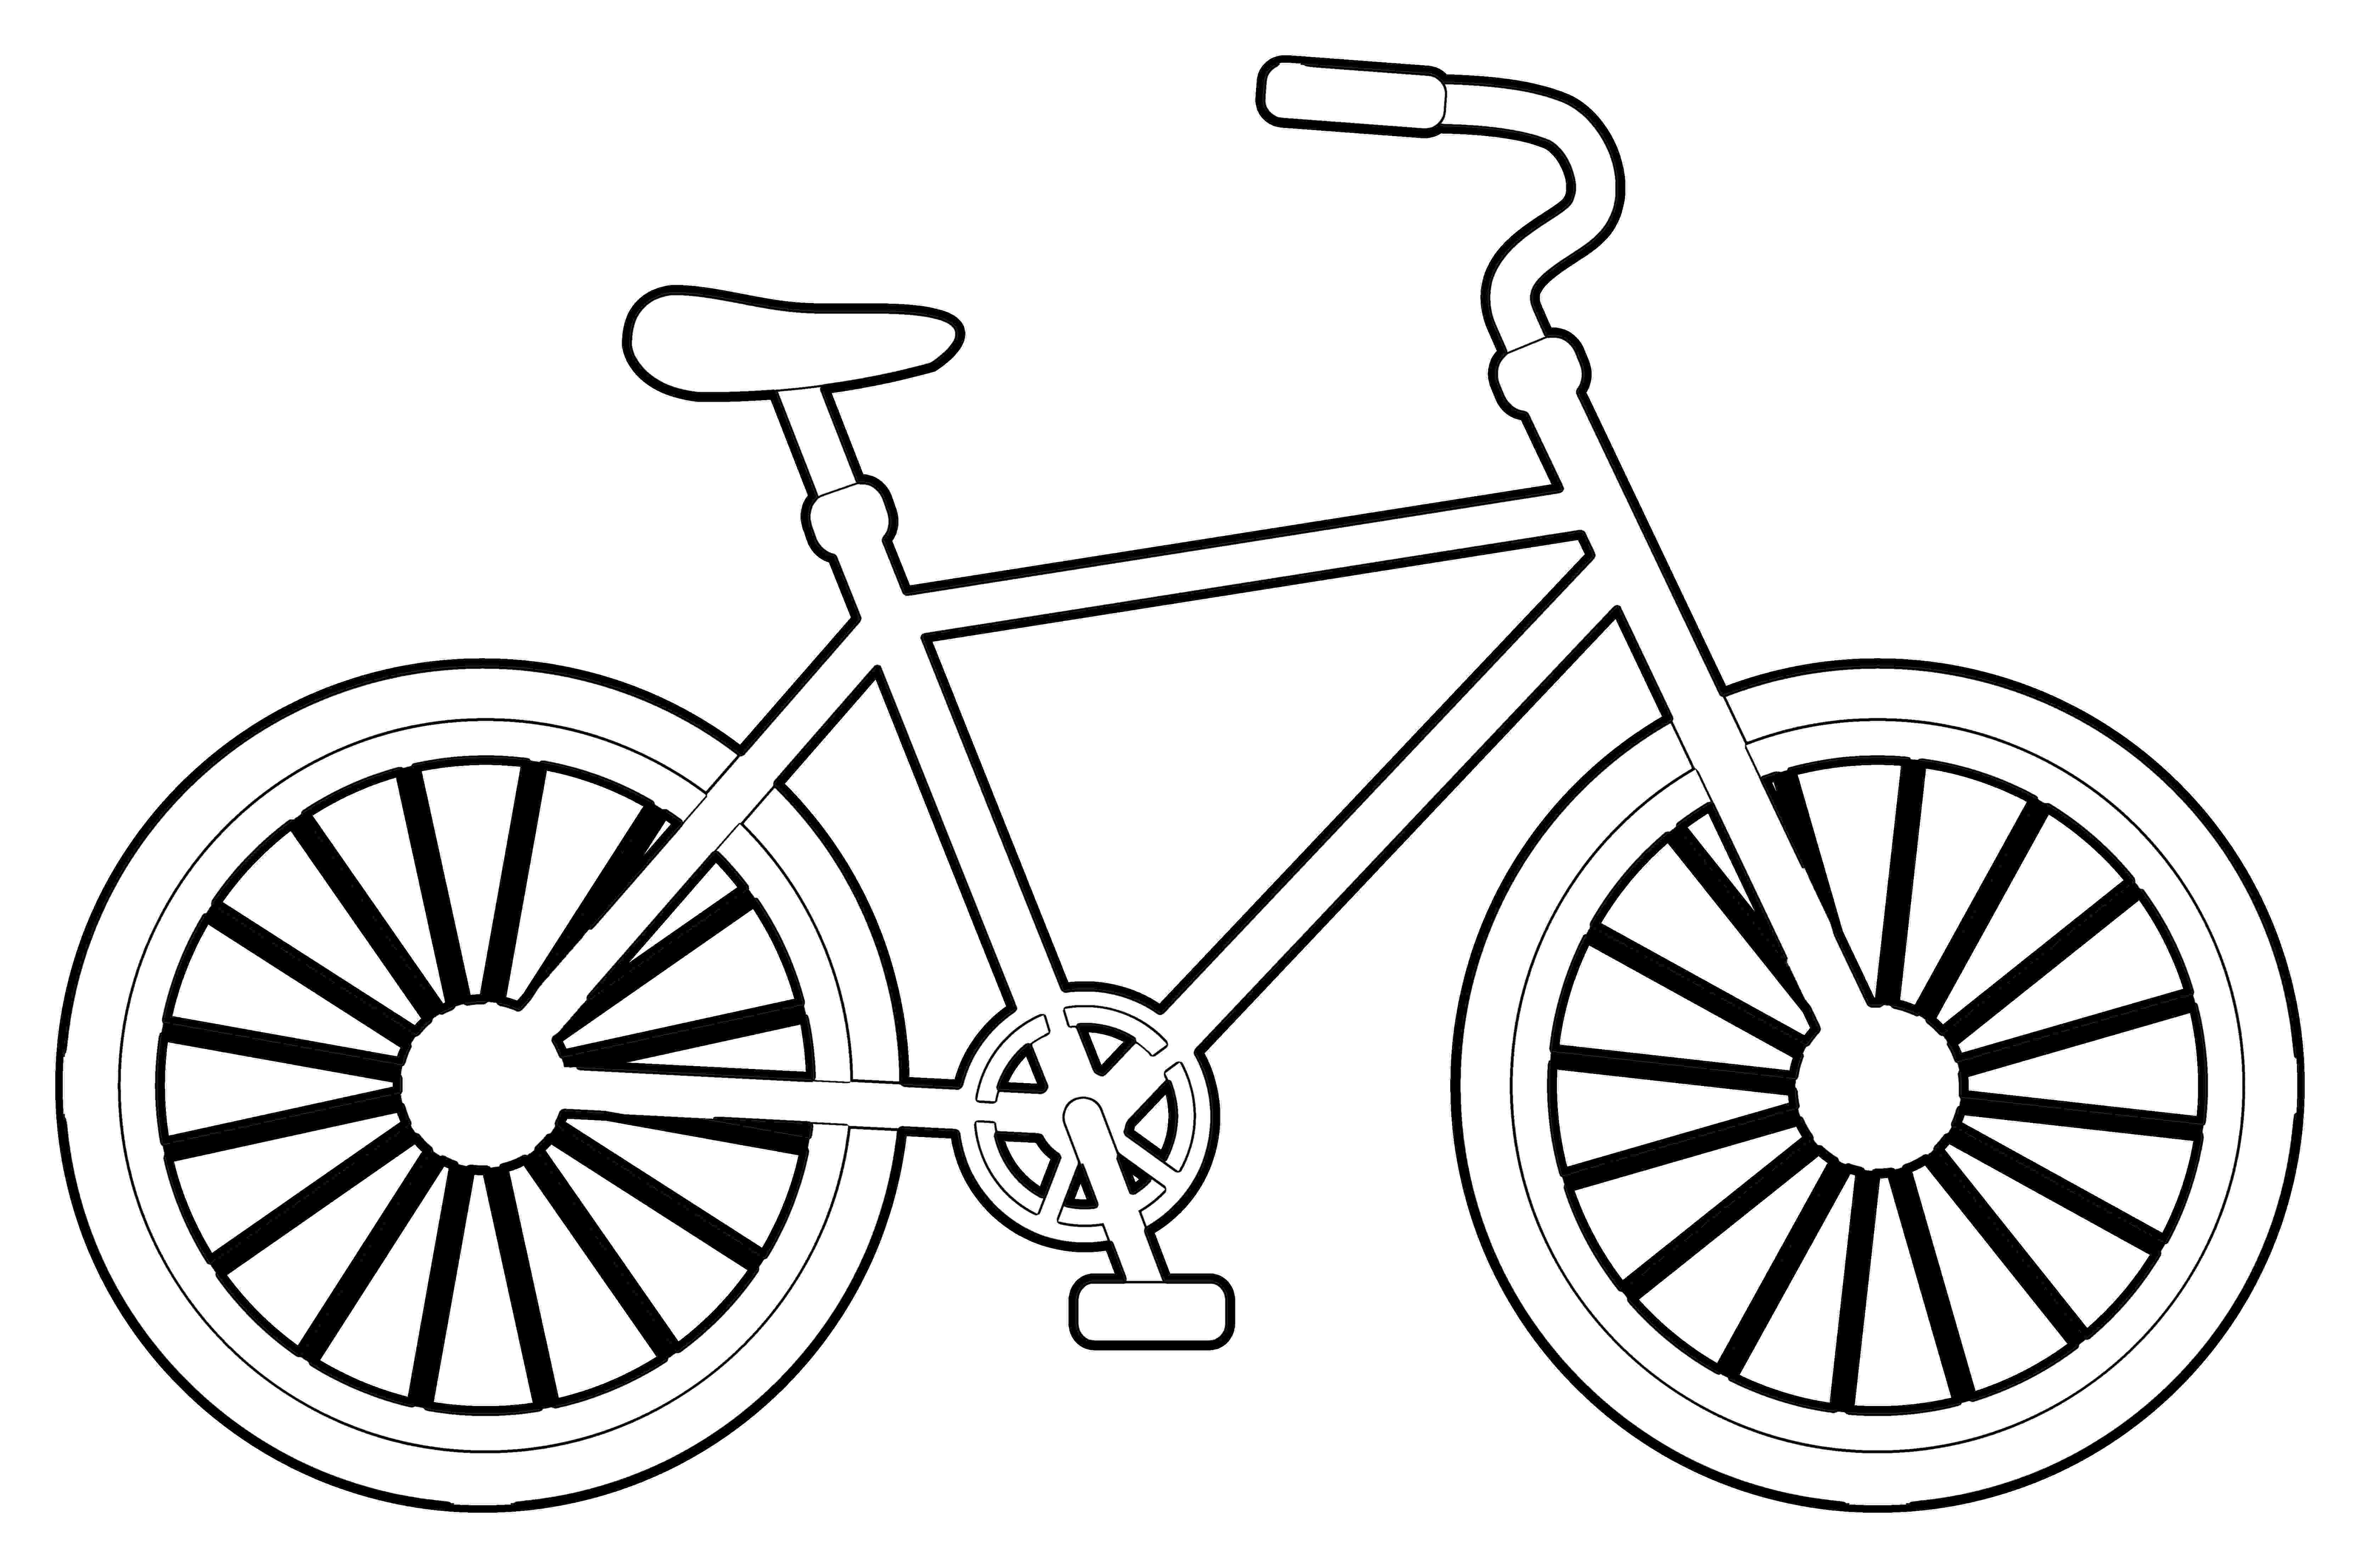 bmx bike coloring pages bike coloring page getcoloringpagescom pages bike bmx coloring